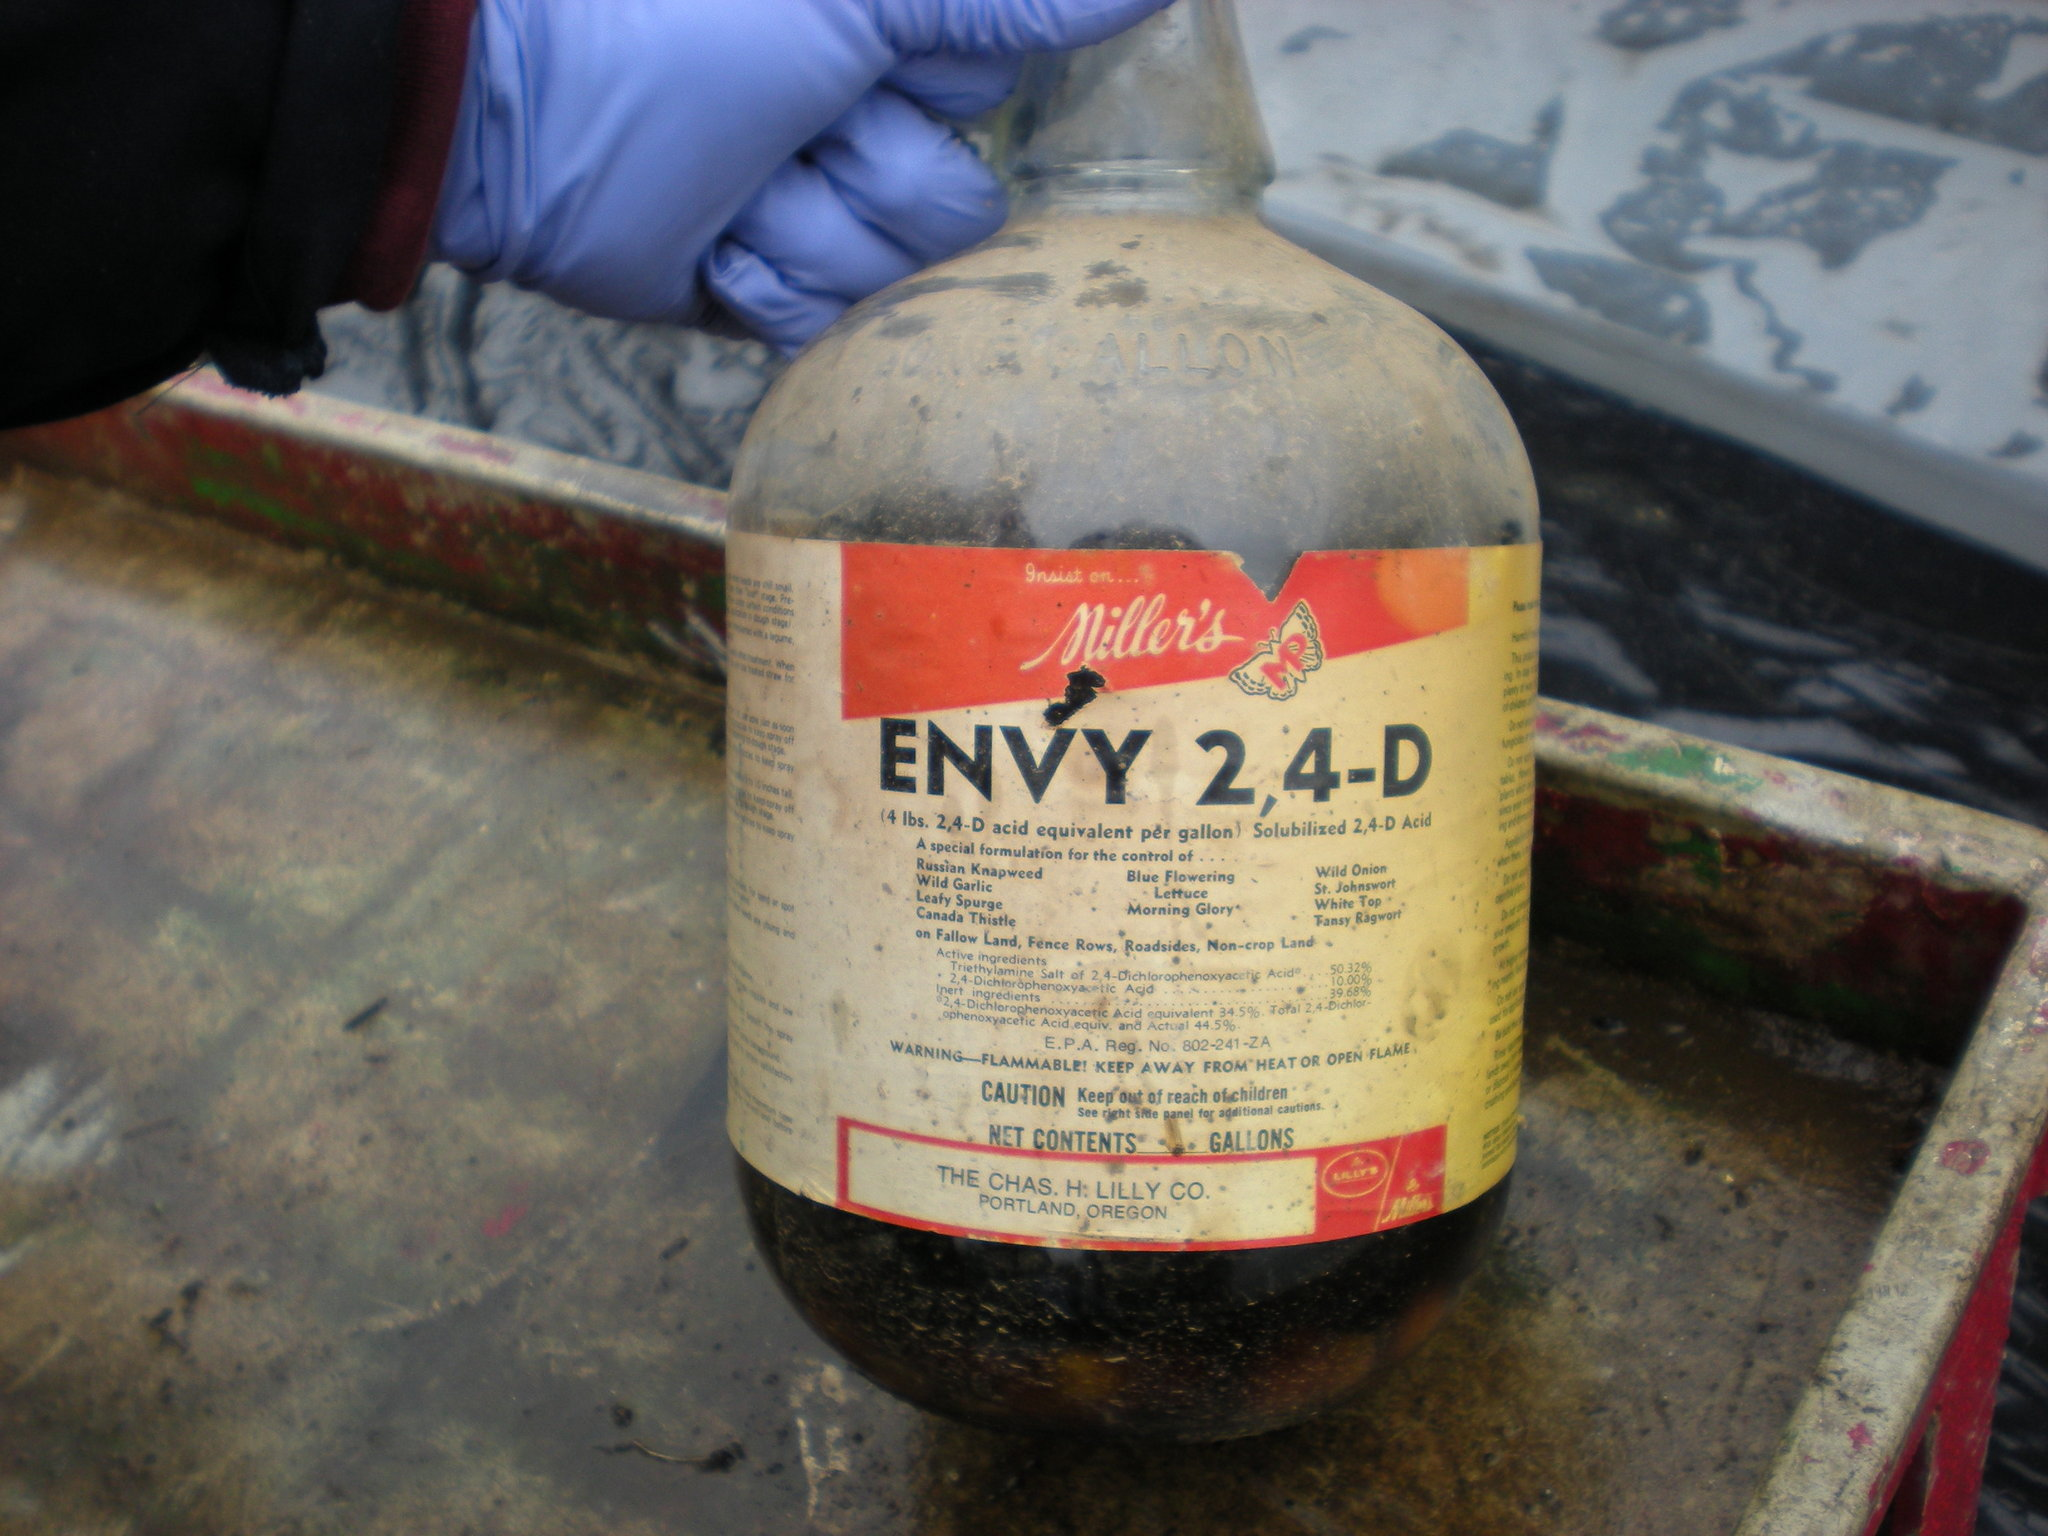 pesticide-collection-2011-24-djpg-66b25b8e9467d224